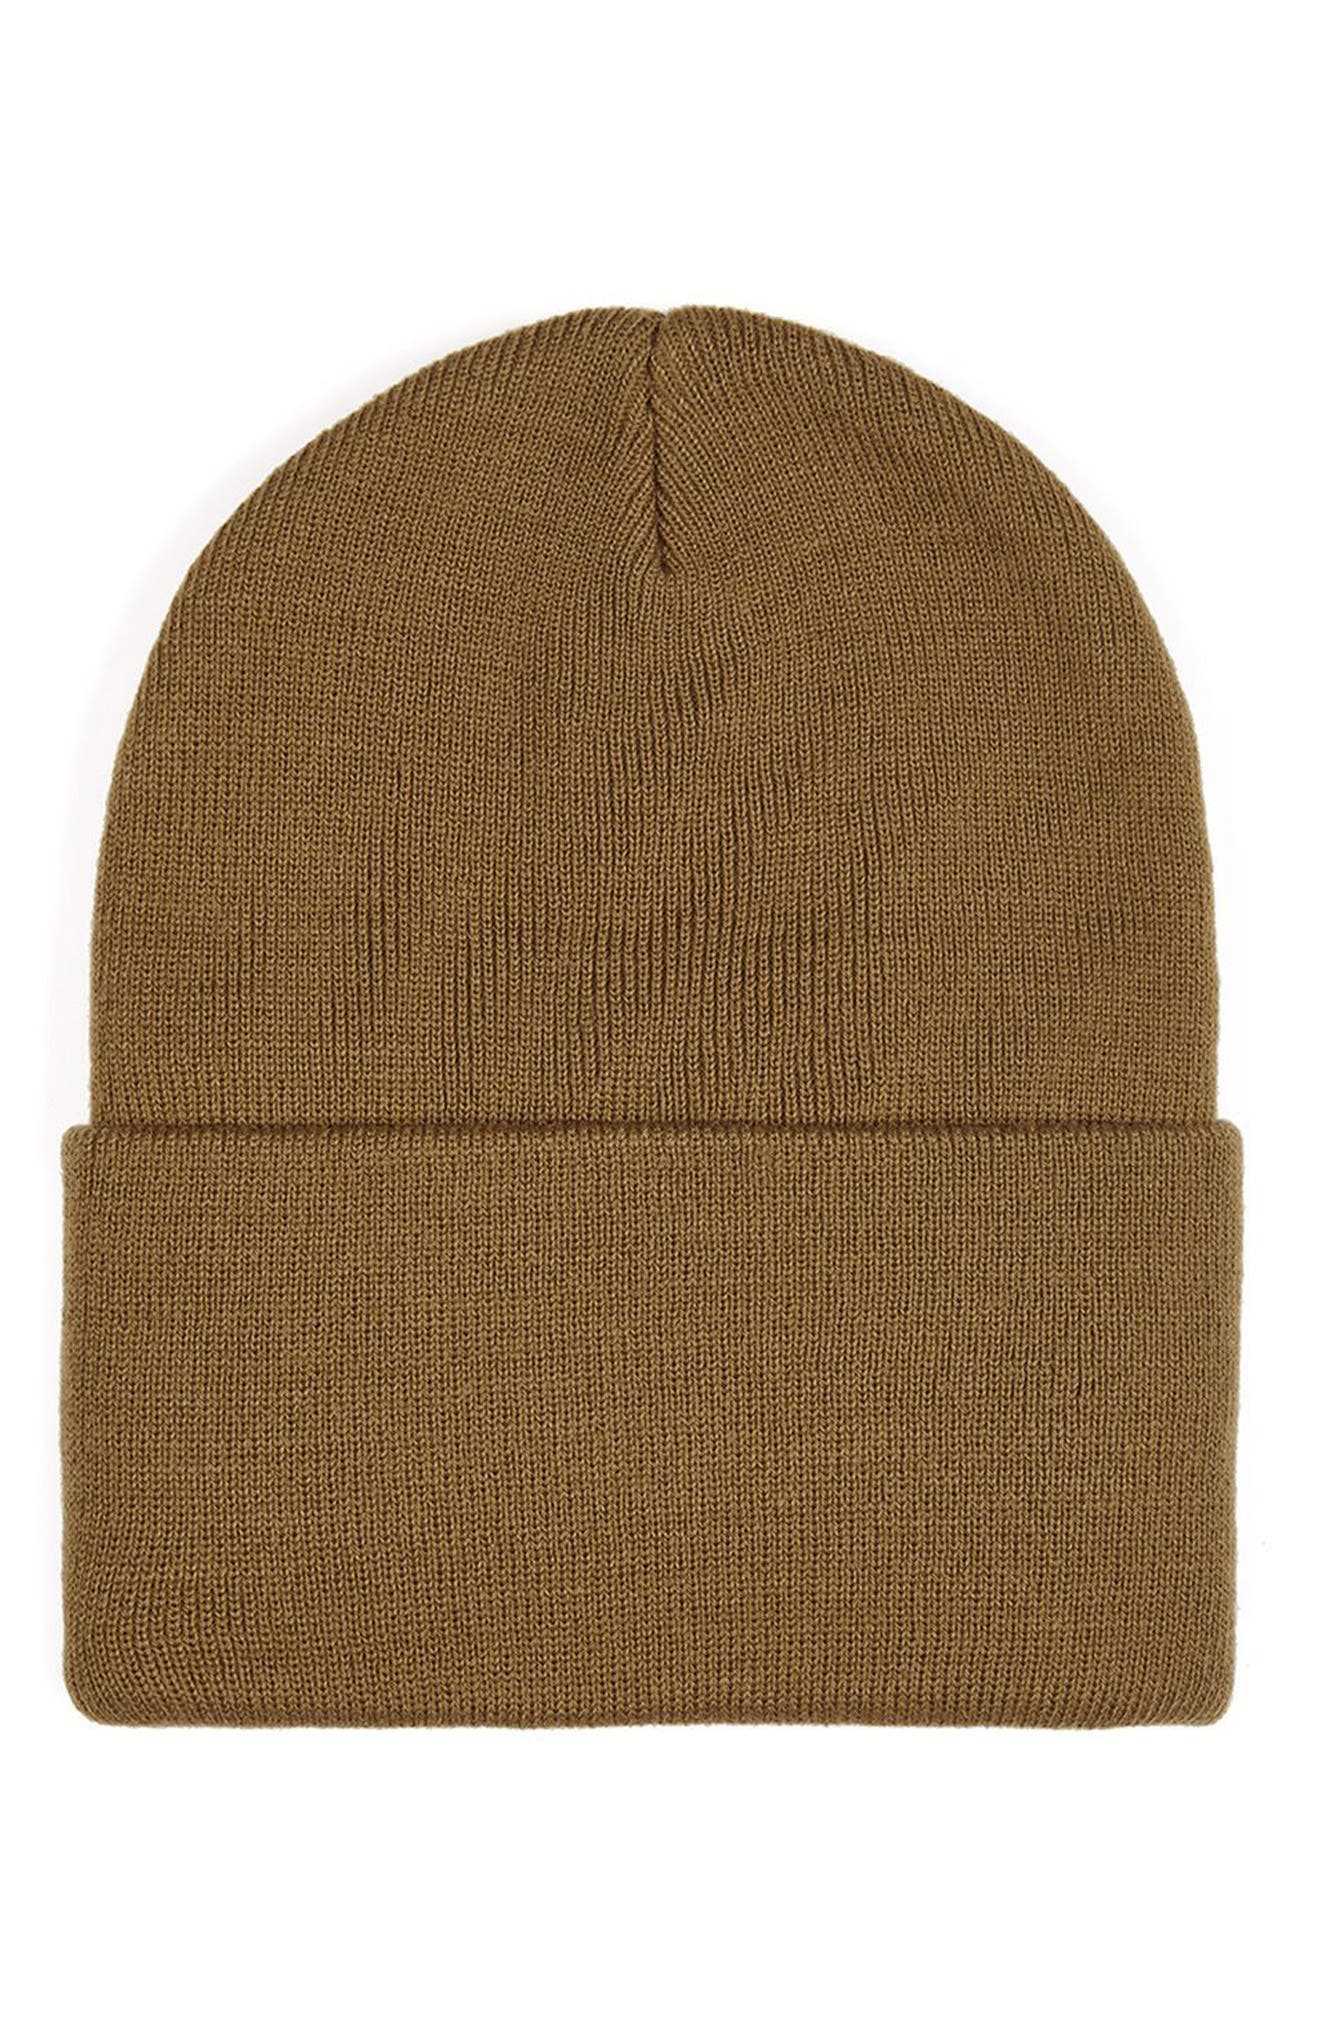 Sports Skater Beanie,                             Main thumbnail 1, color,                             200